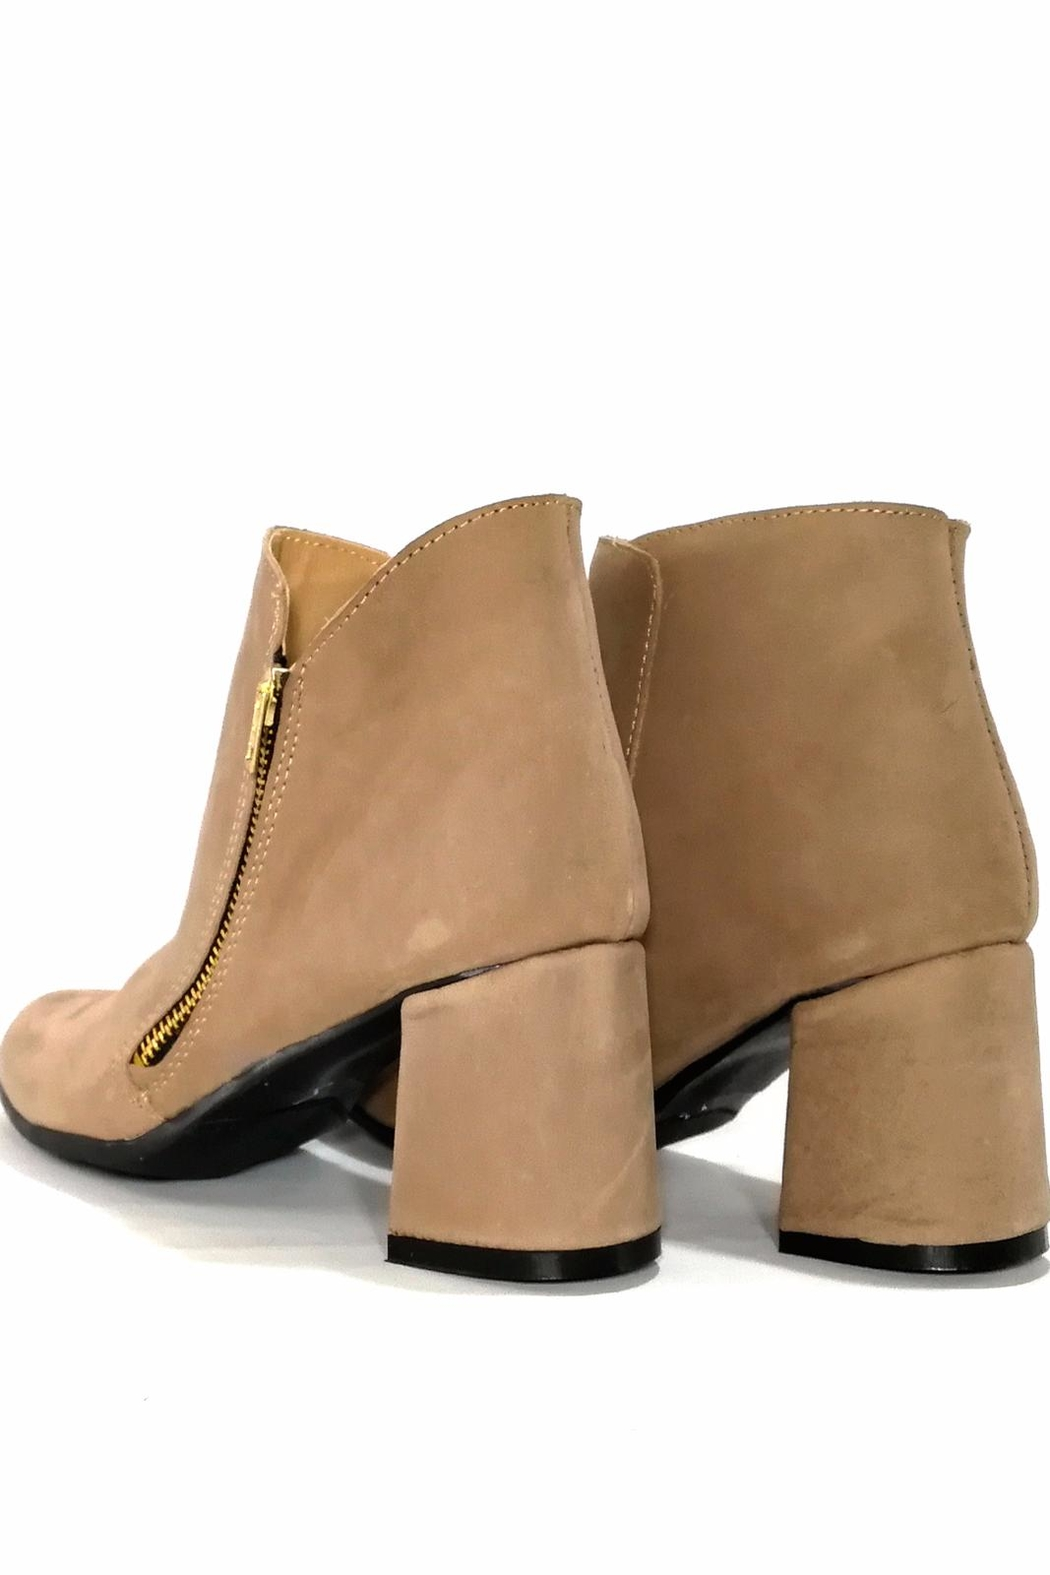 MIYE COLLAZZO Beige Leather Bootie - Back Cropped Image